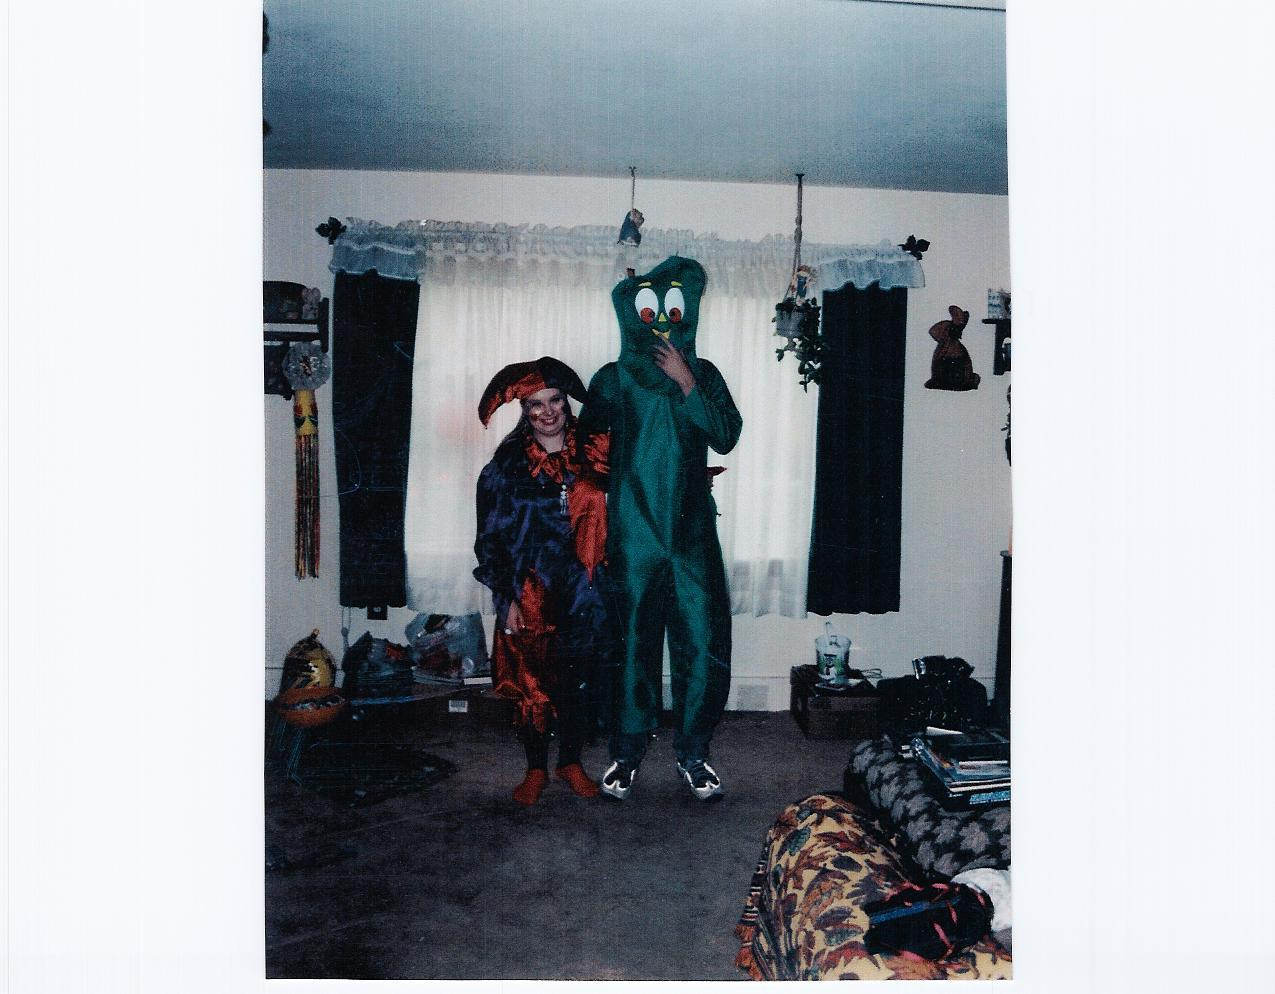 ricky_gumby_andval_jester_halloween002.jpg